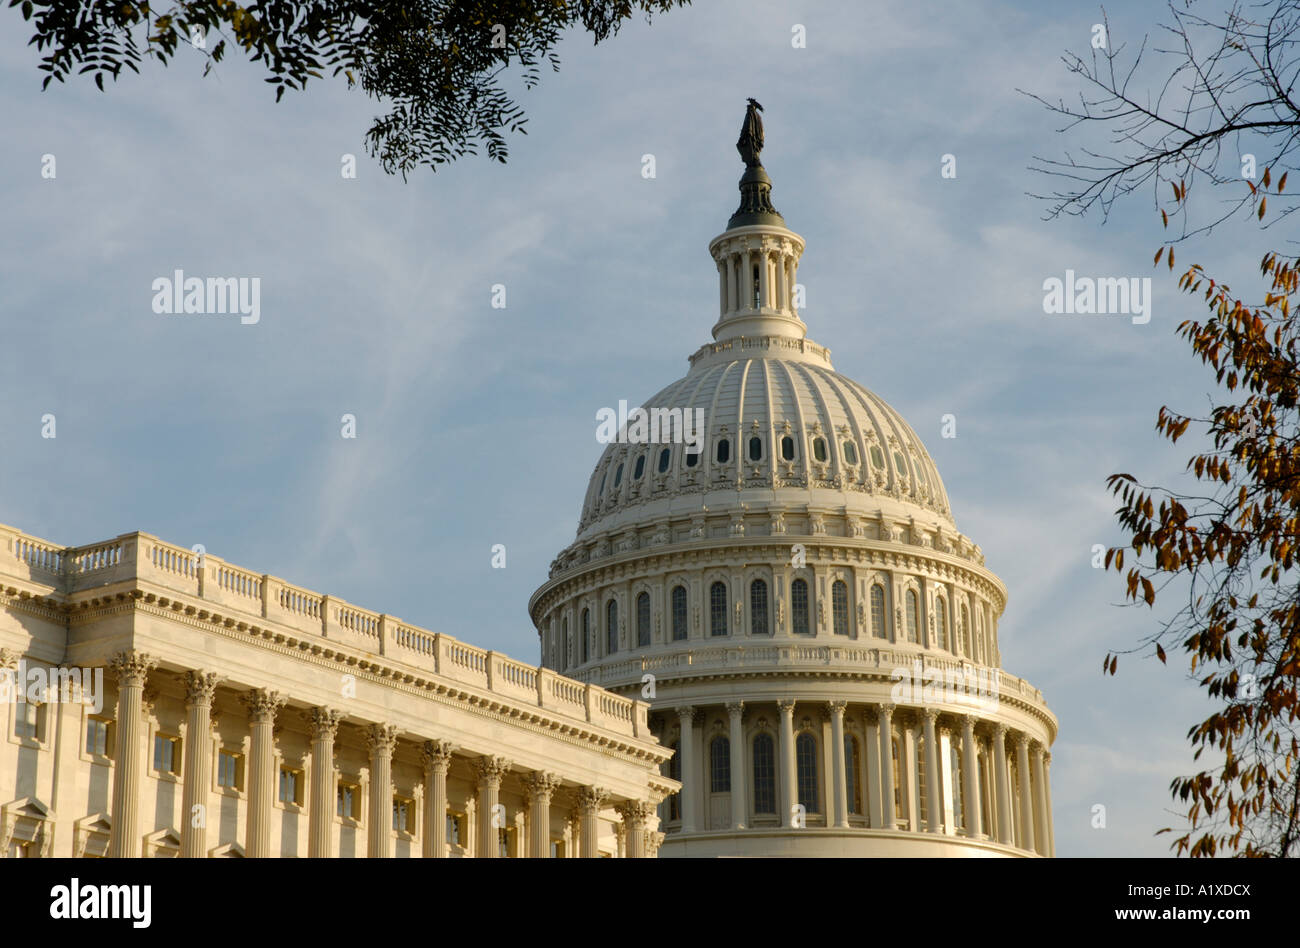 U.S. United States Capitol Building - Stock Image